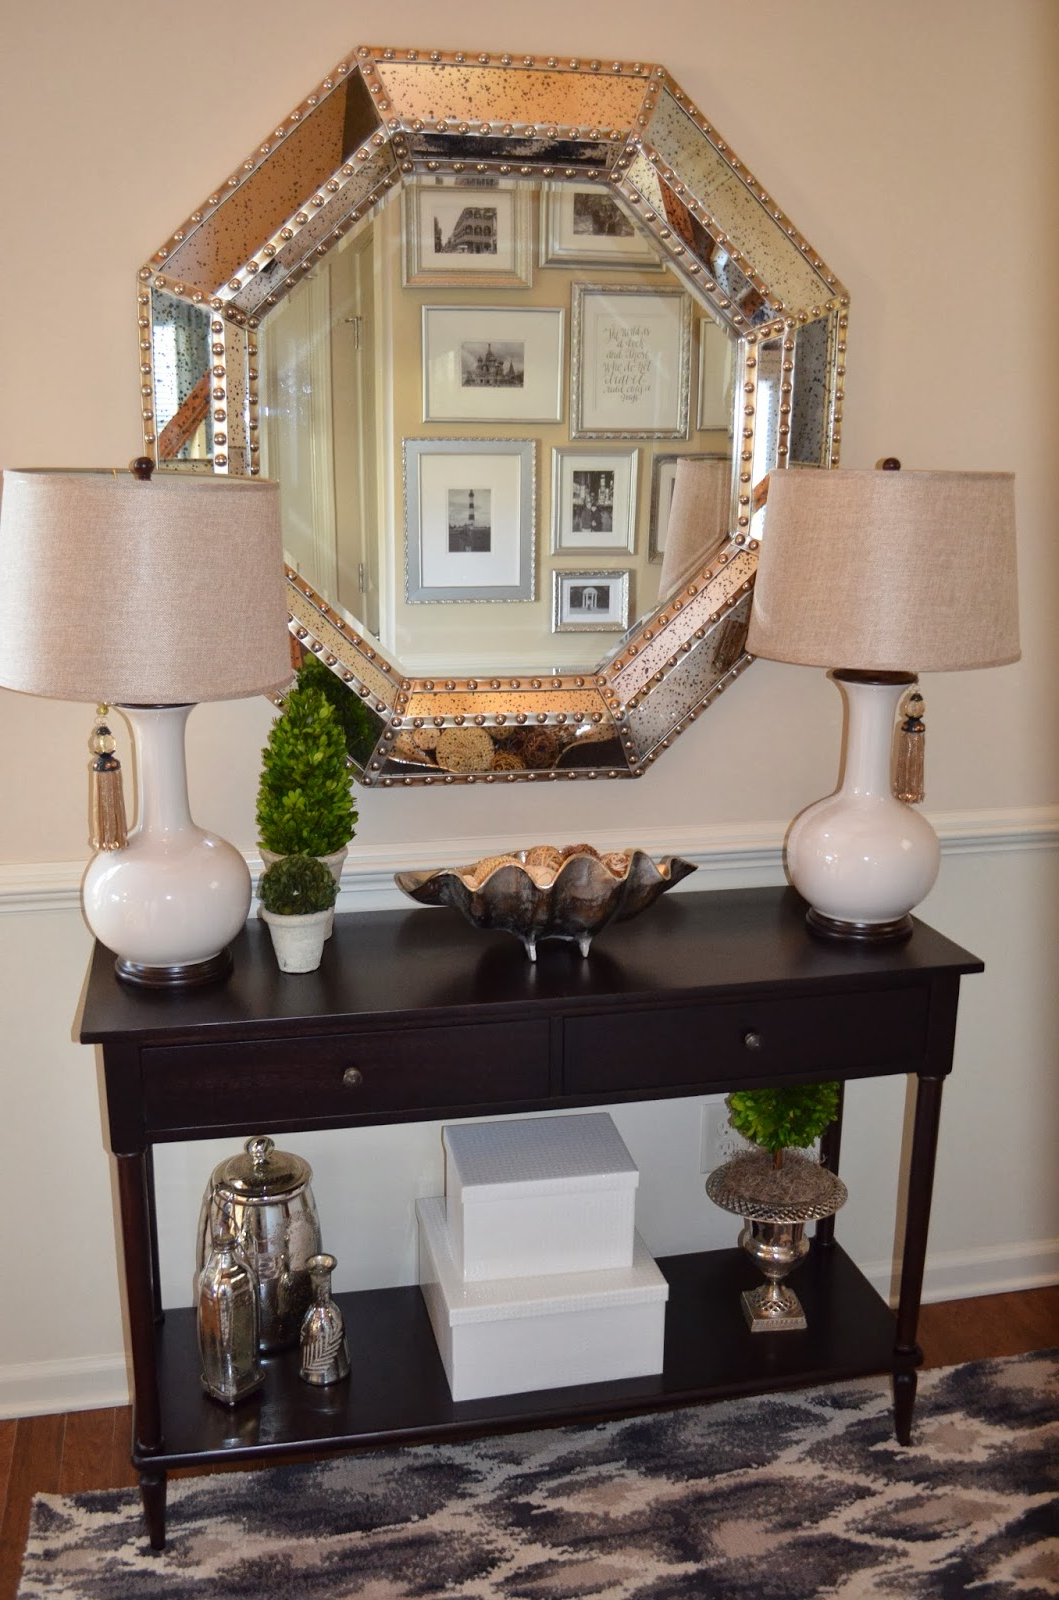 2020 Entryway Wall Mirrors Pertaining To Mirrors Amazing Accent Entryway Modern Decorative For Mirror (View 8 of 20)